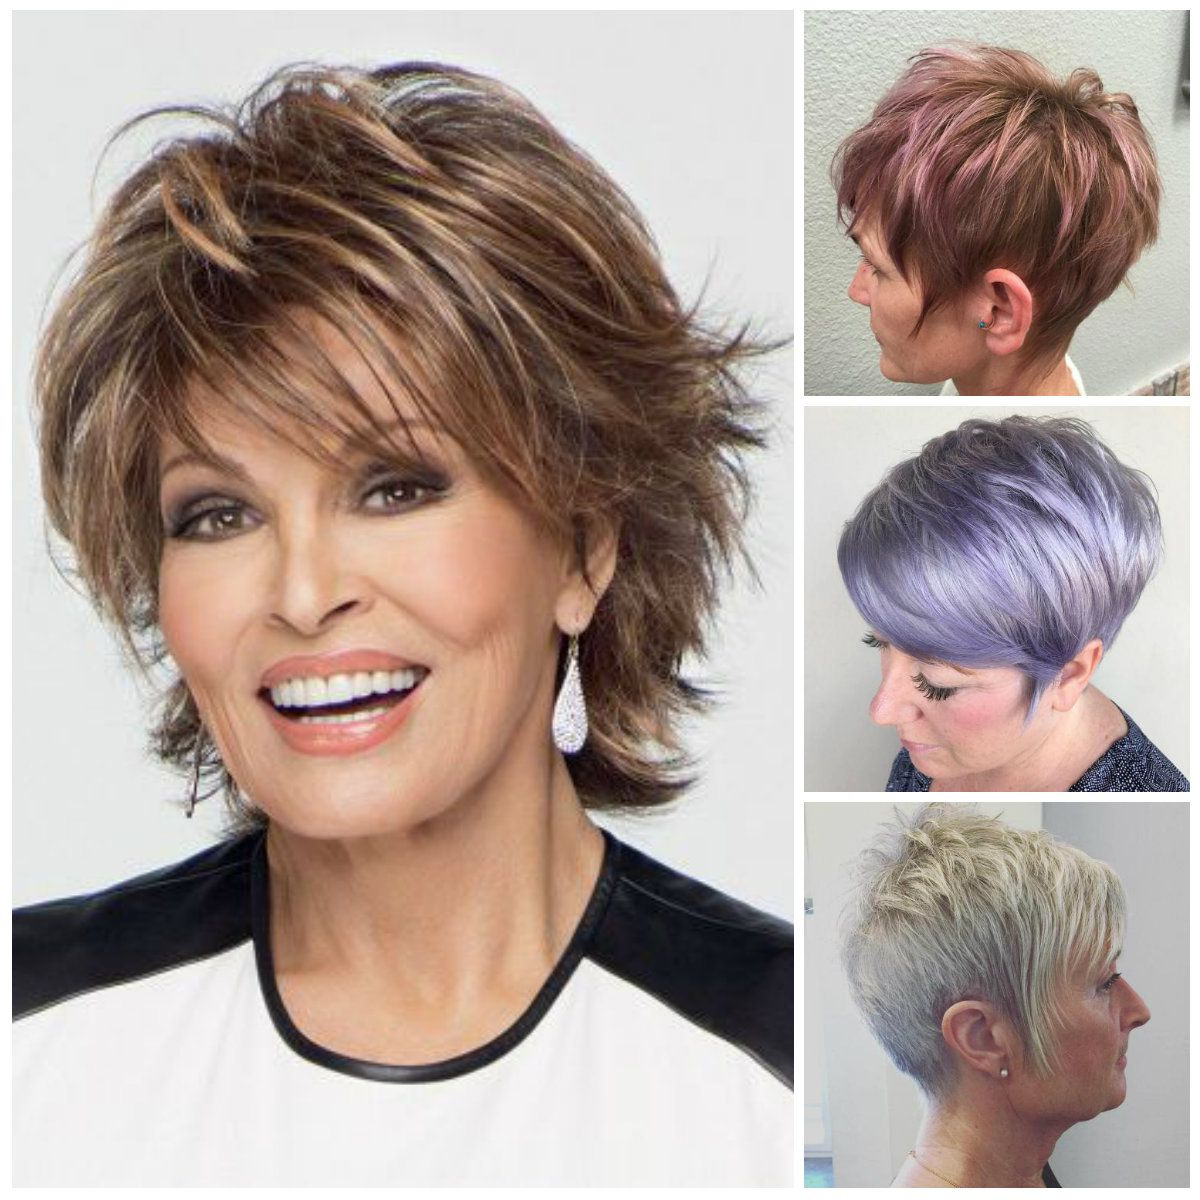 70 Hairstyles For Small Faces Best Of 2017 Short Hairstyles For Intended For Short Hairstyles For Small Faces (Gallery 3 of 25)